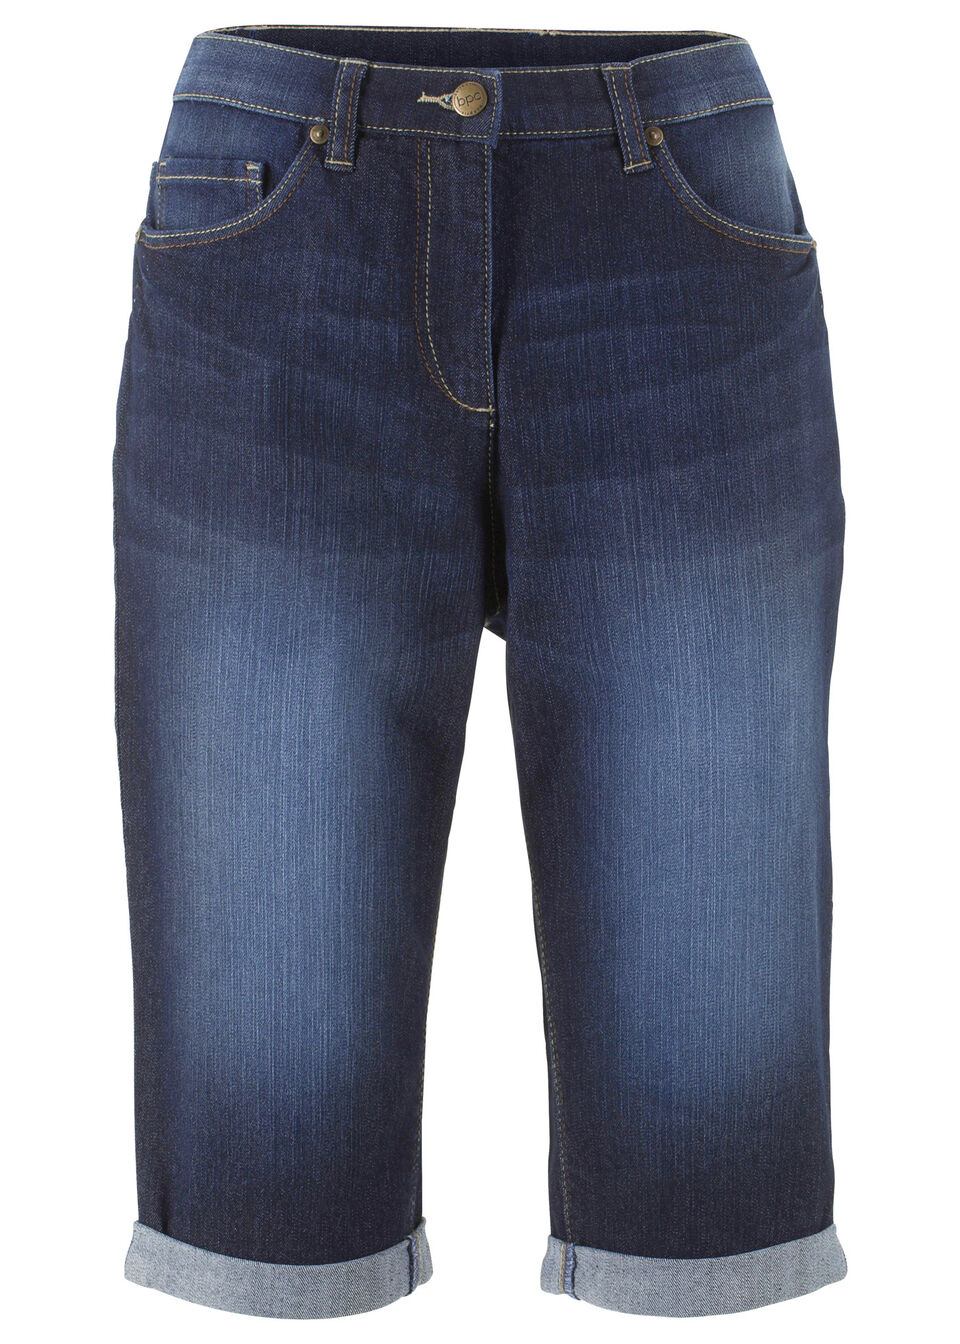 Bermuda denim stretch bonprix